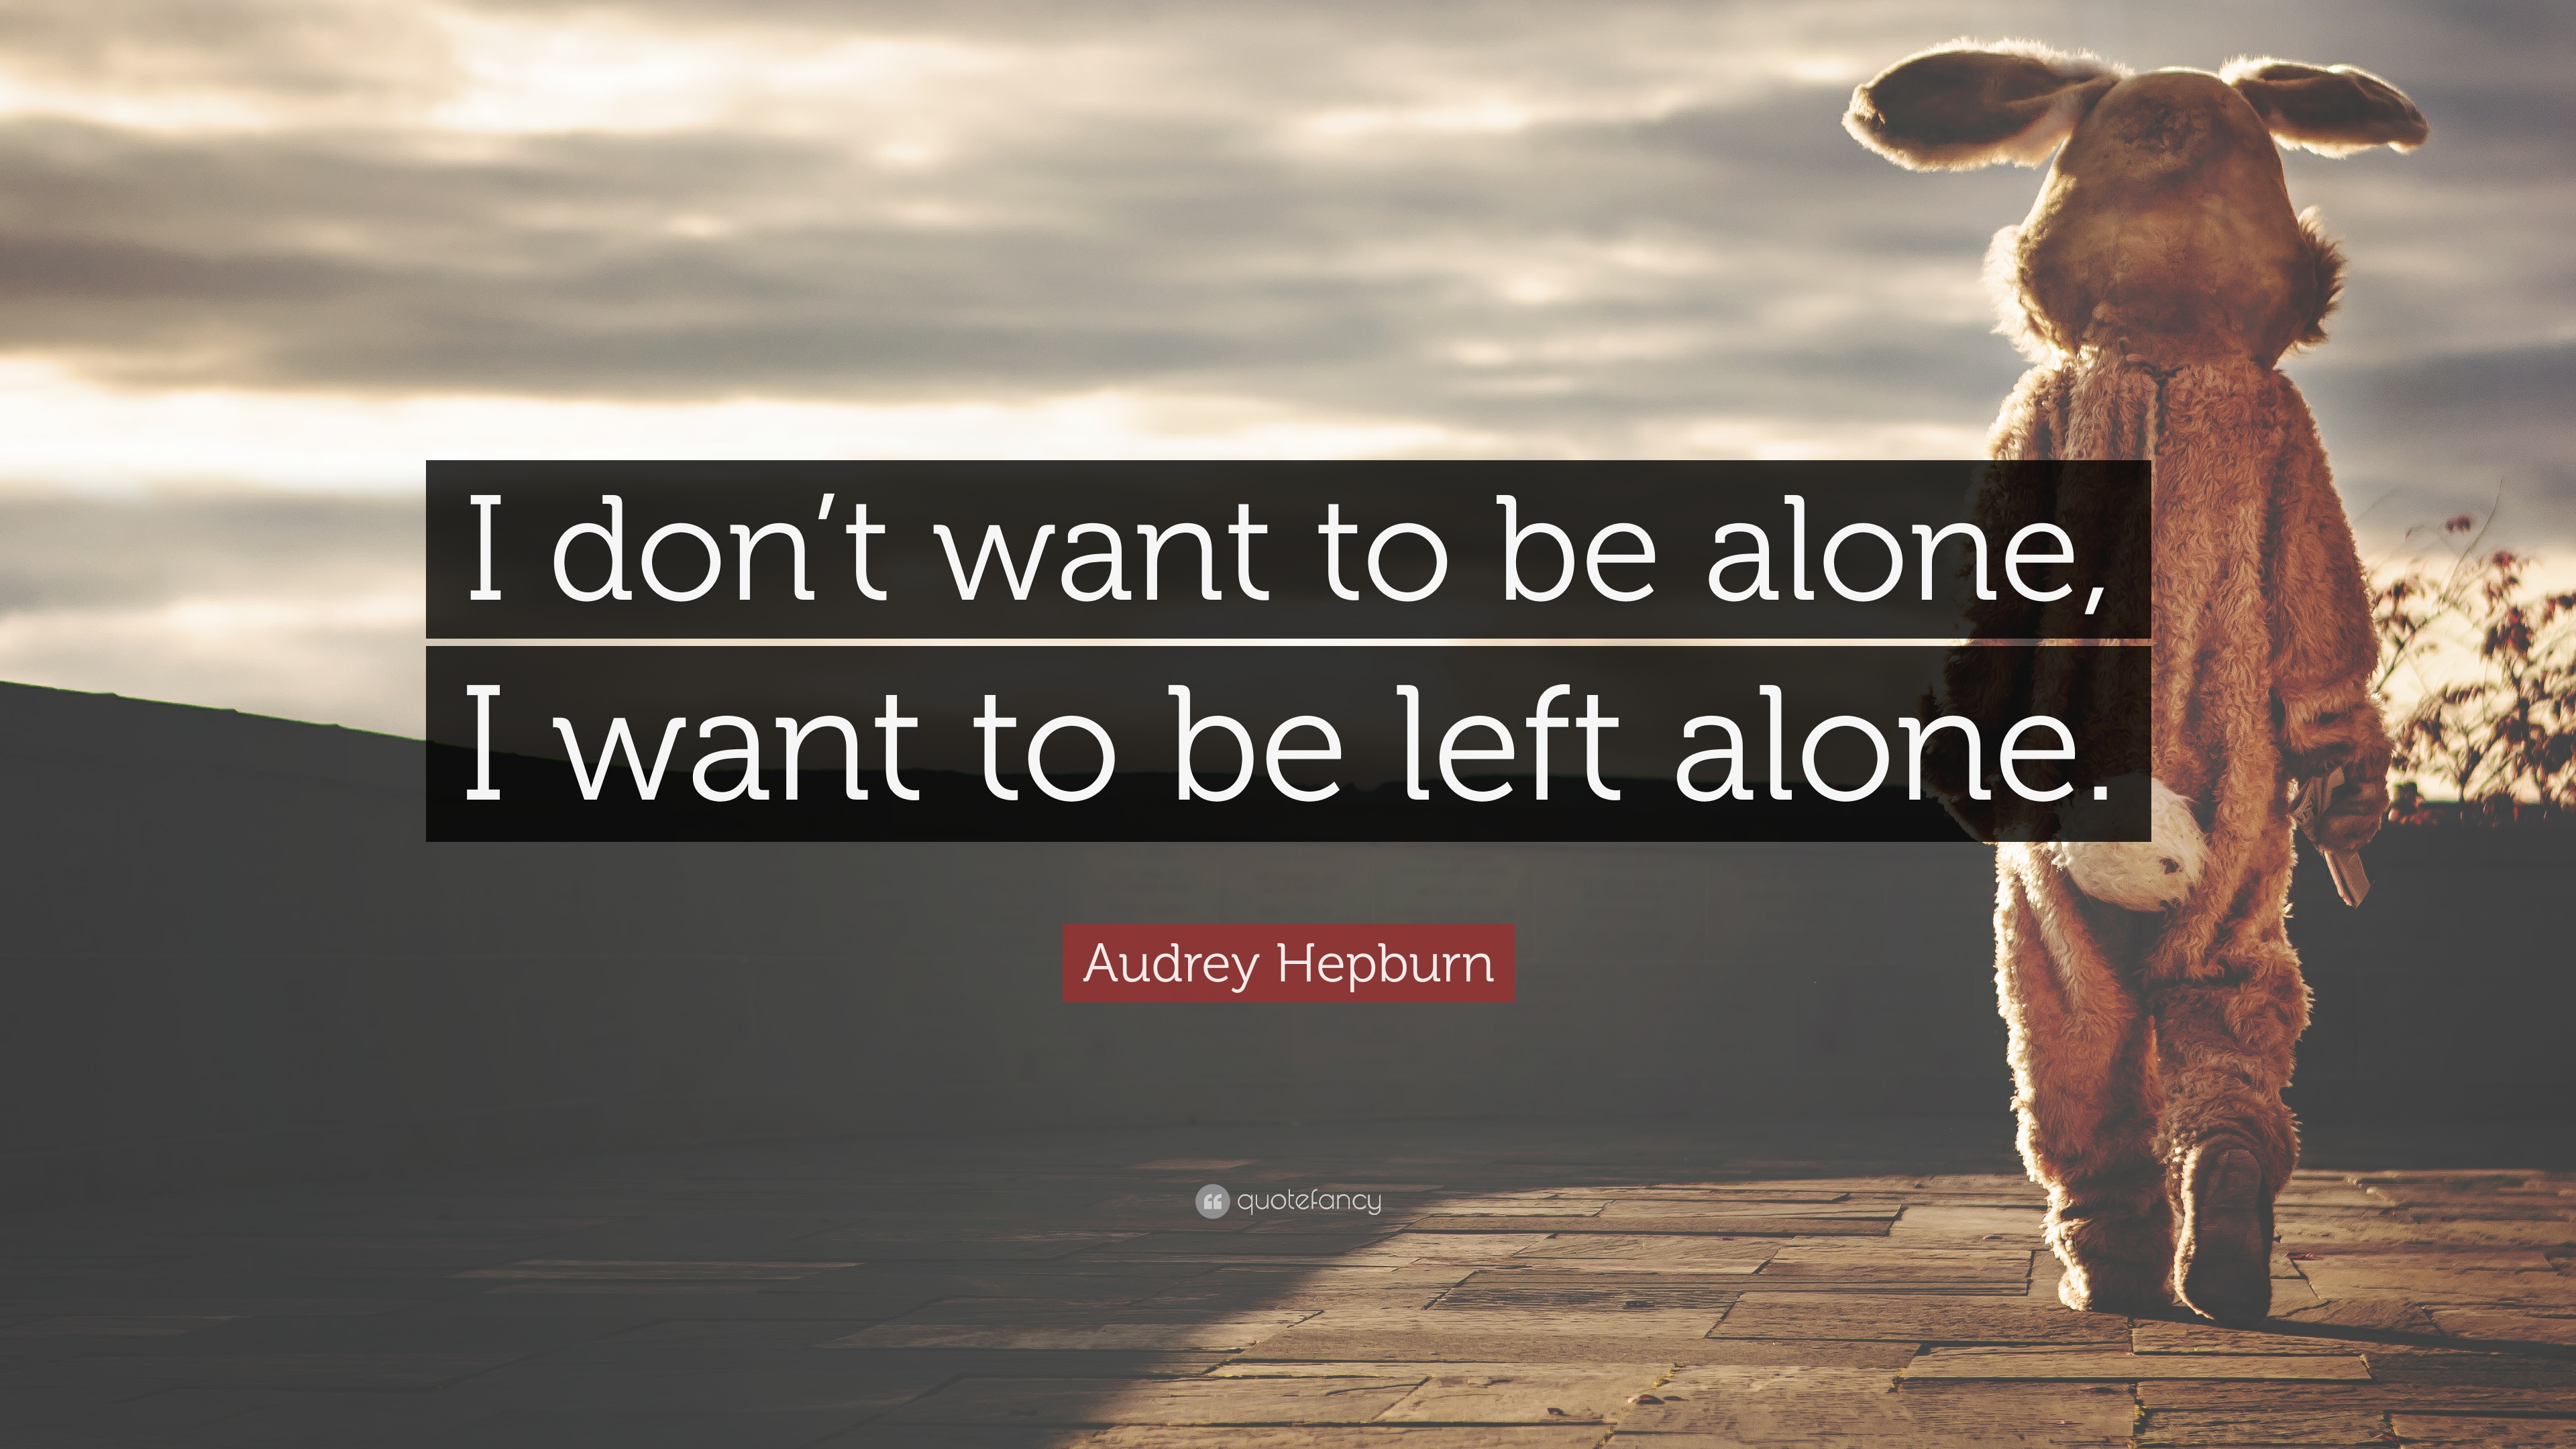 audrey hepburn quote i don t want to be alone i want to be left alone 18 wallpapers. Black Bedroom Furniture Sets. Home Design Ideas